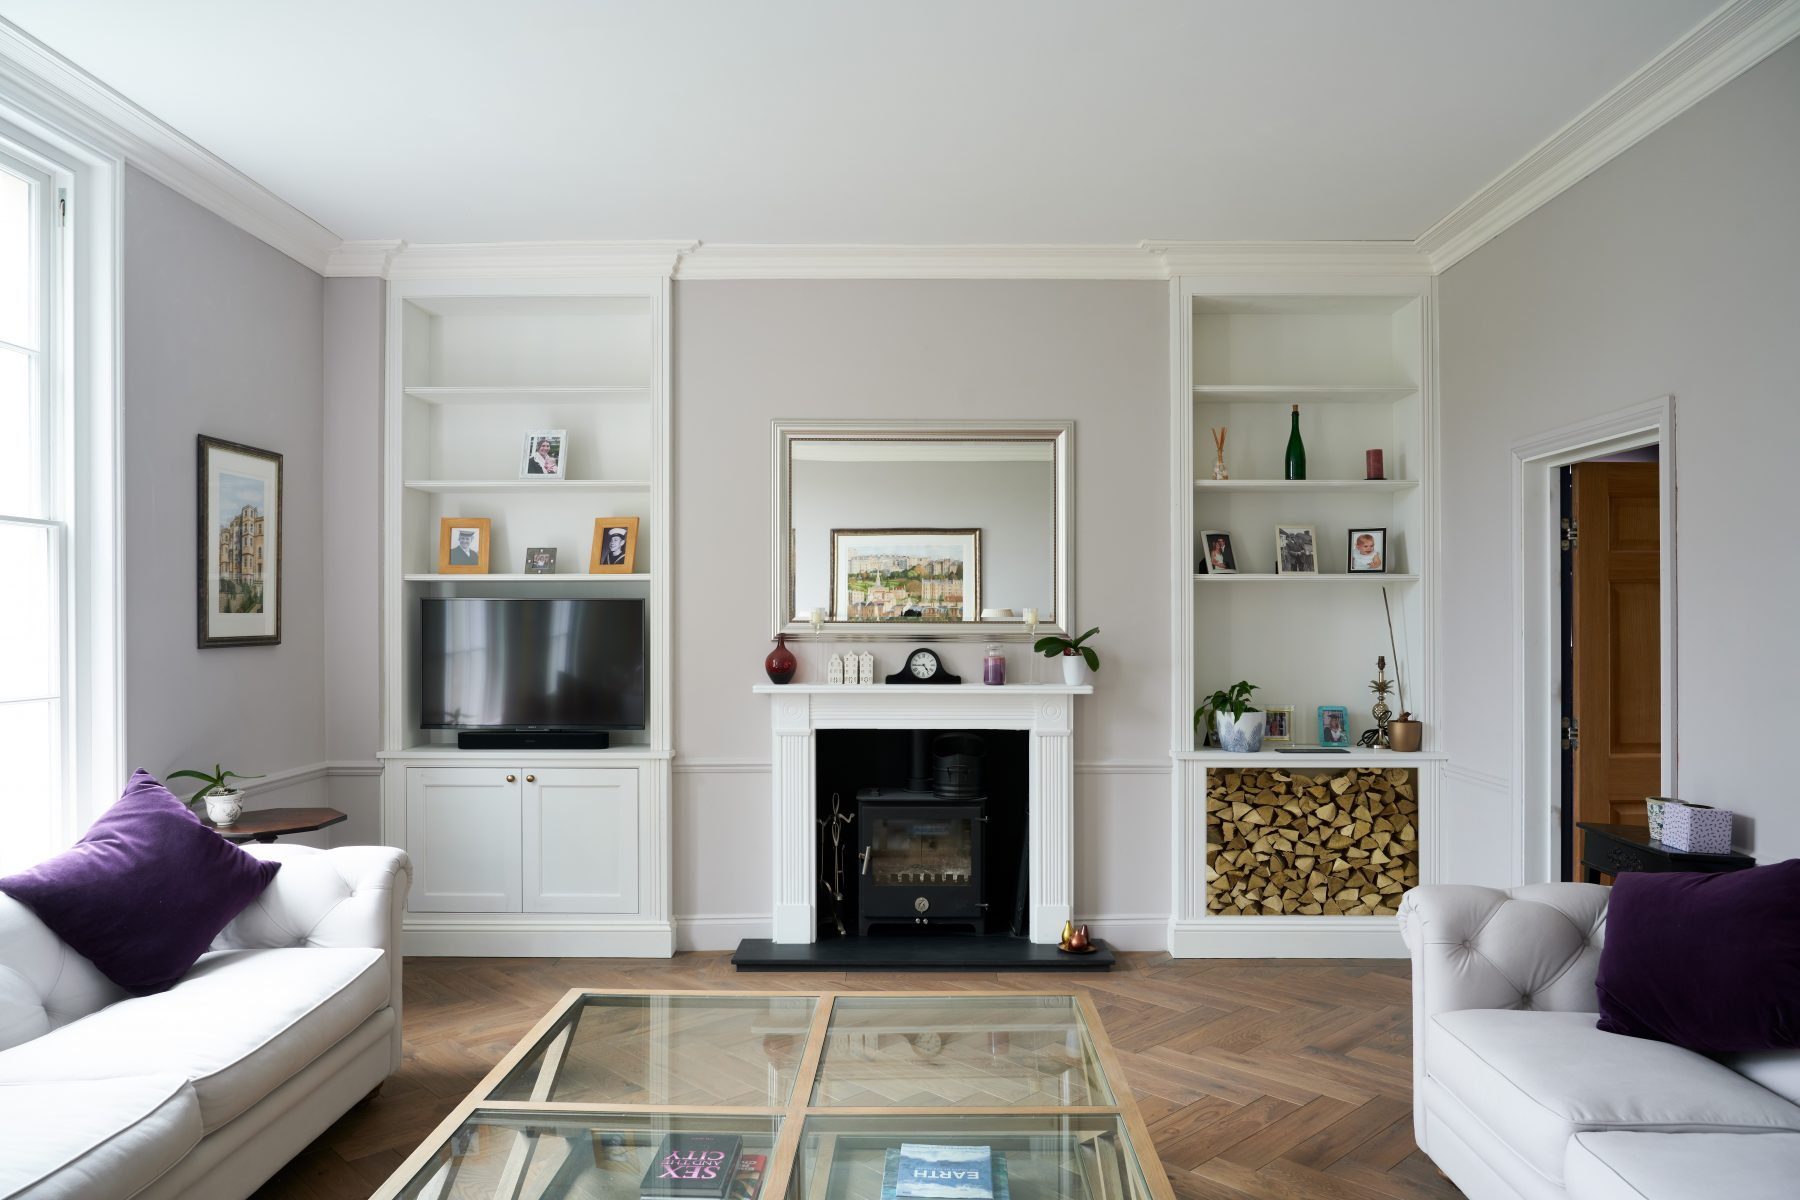 Alcove cabinetry incorporating log store